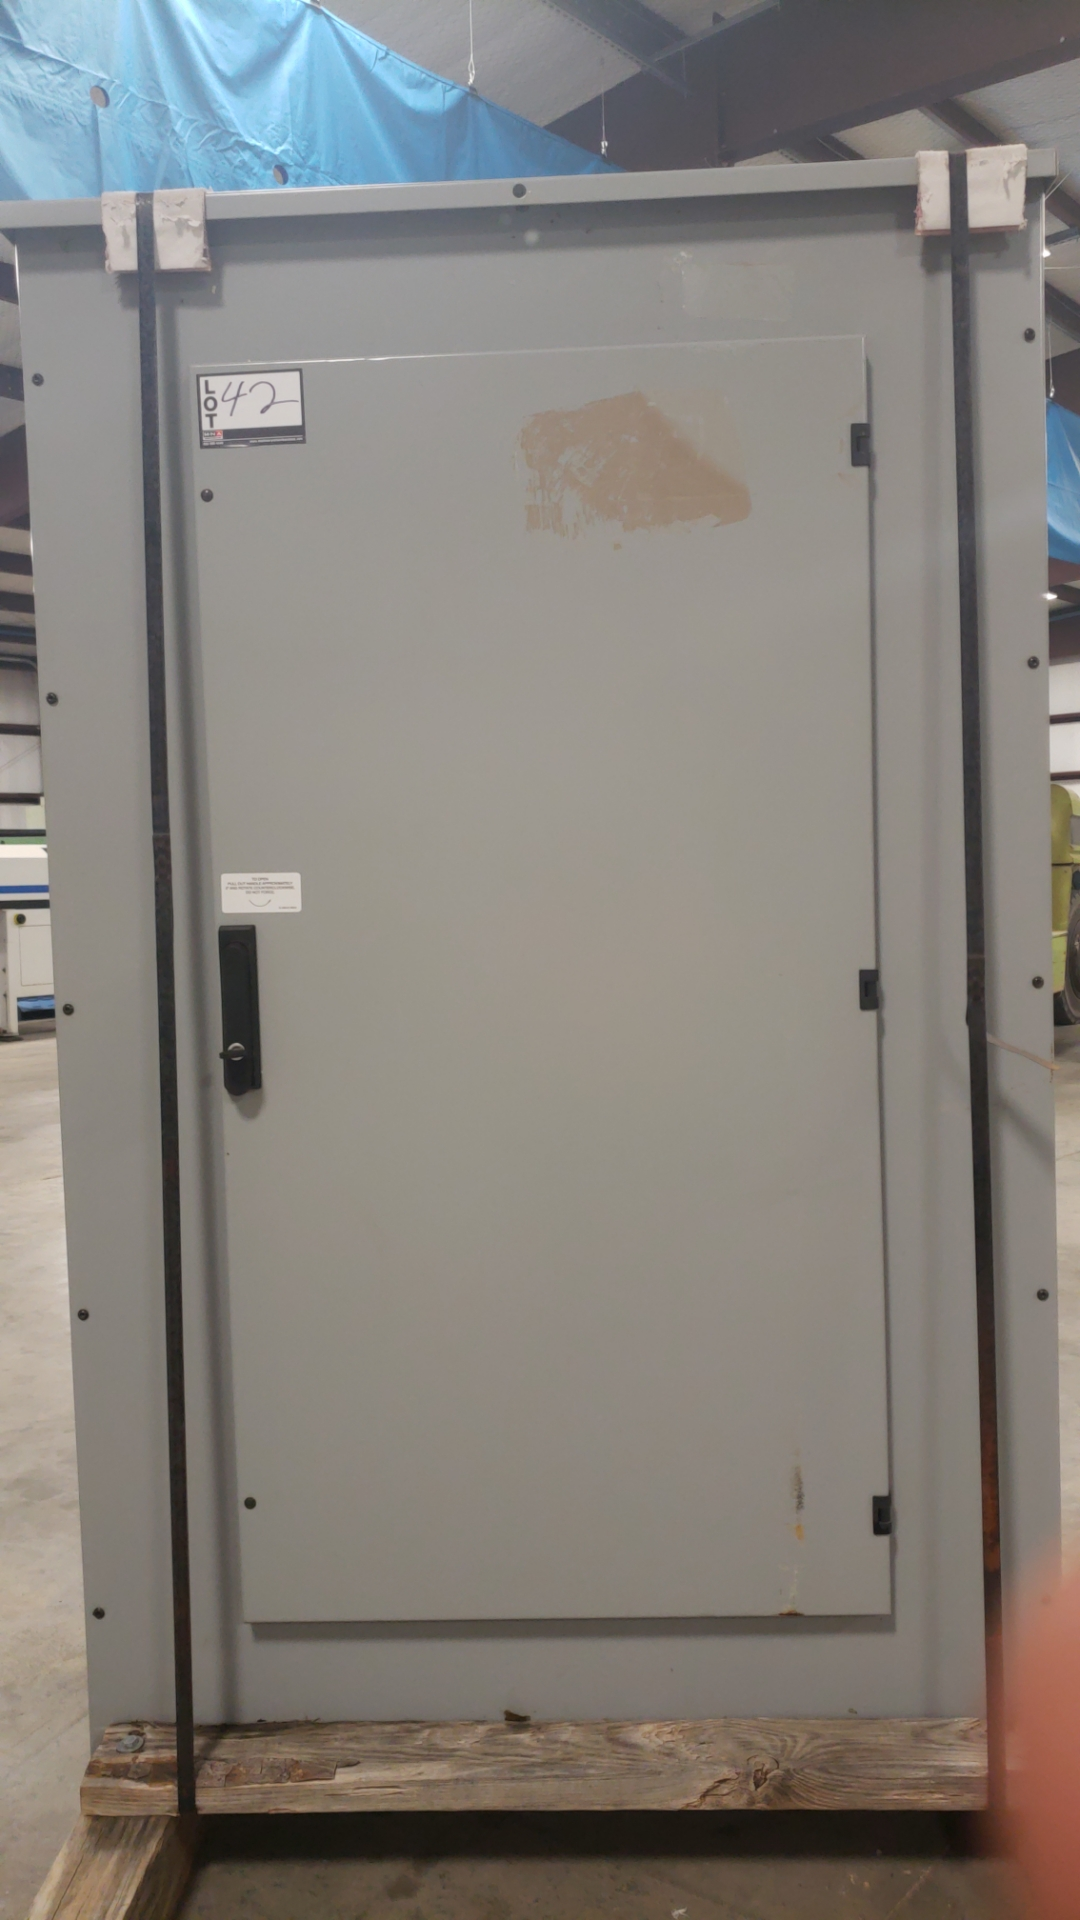 New Siemes 800 AMP 600 volt electric panel